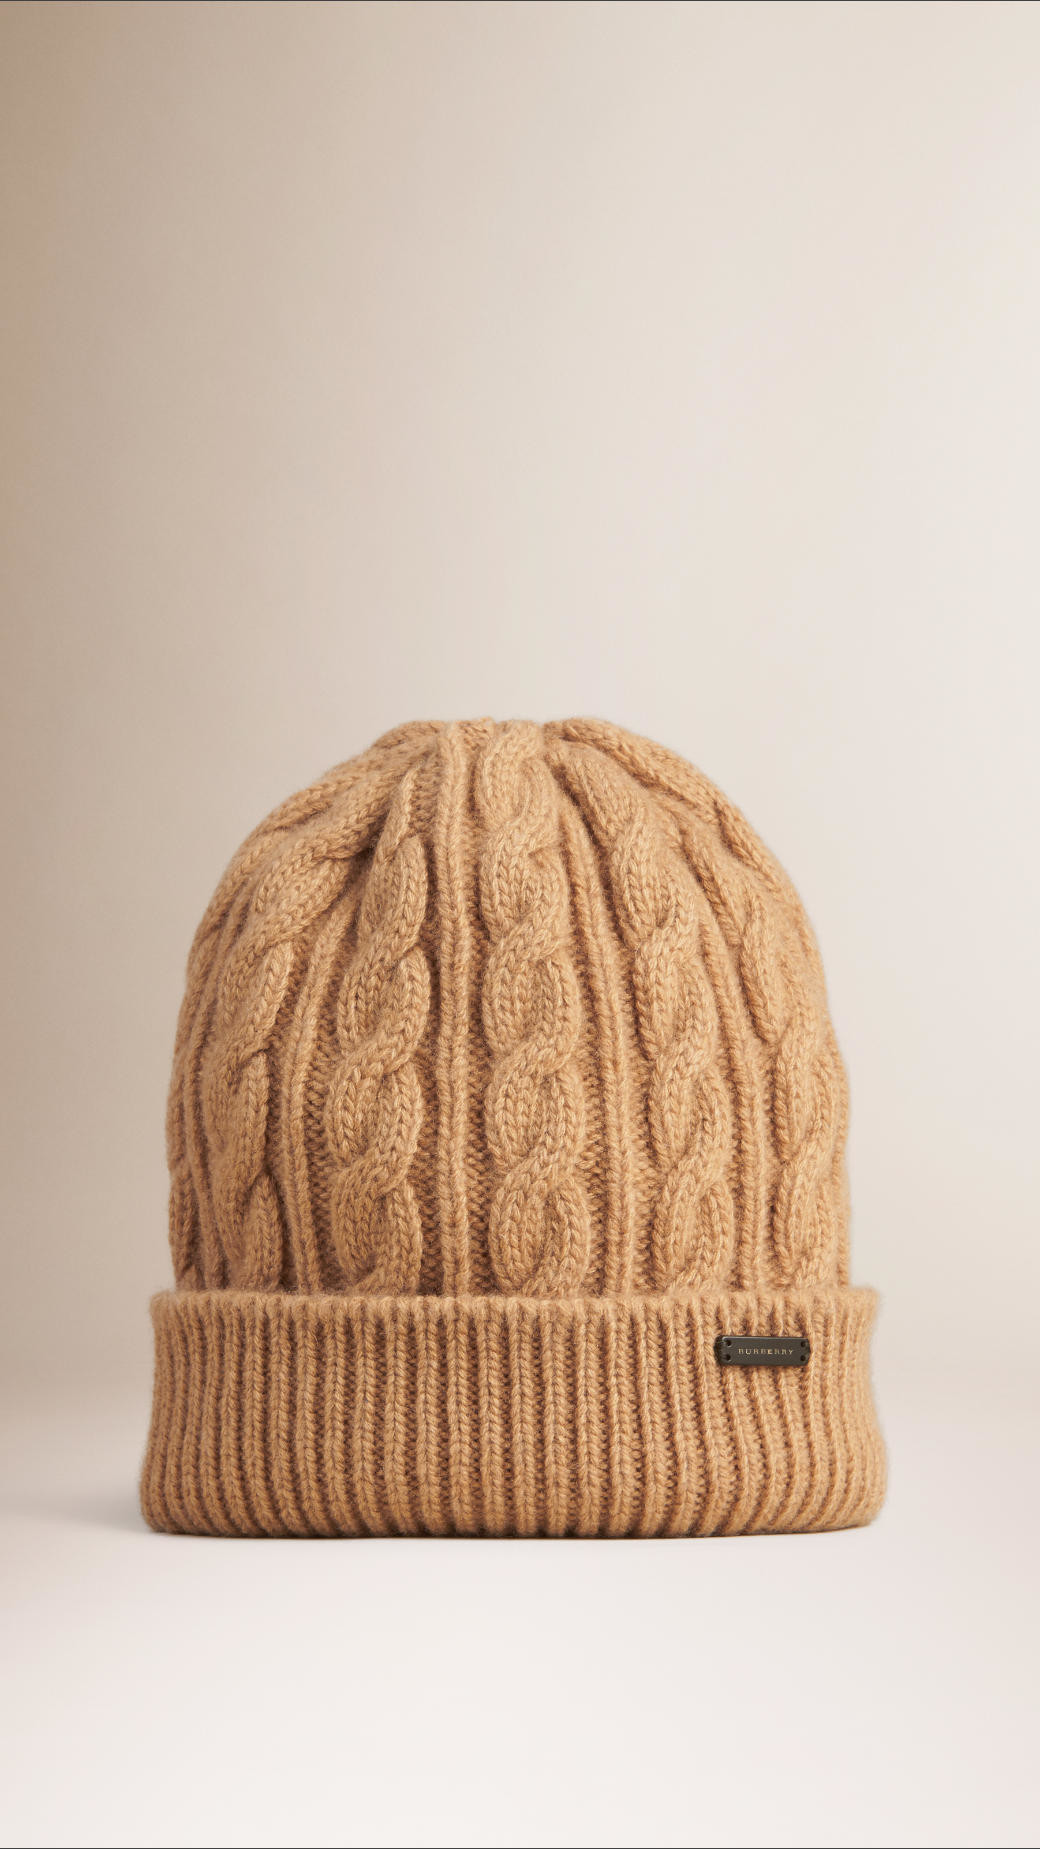 Burberry Cable Knit Wool Cashmere Beanie in Beige CAMEL